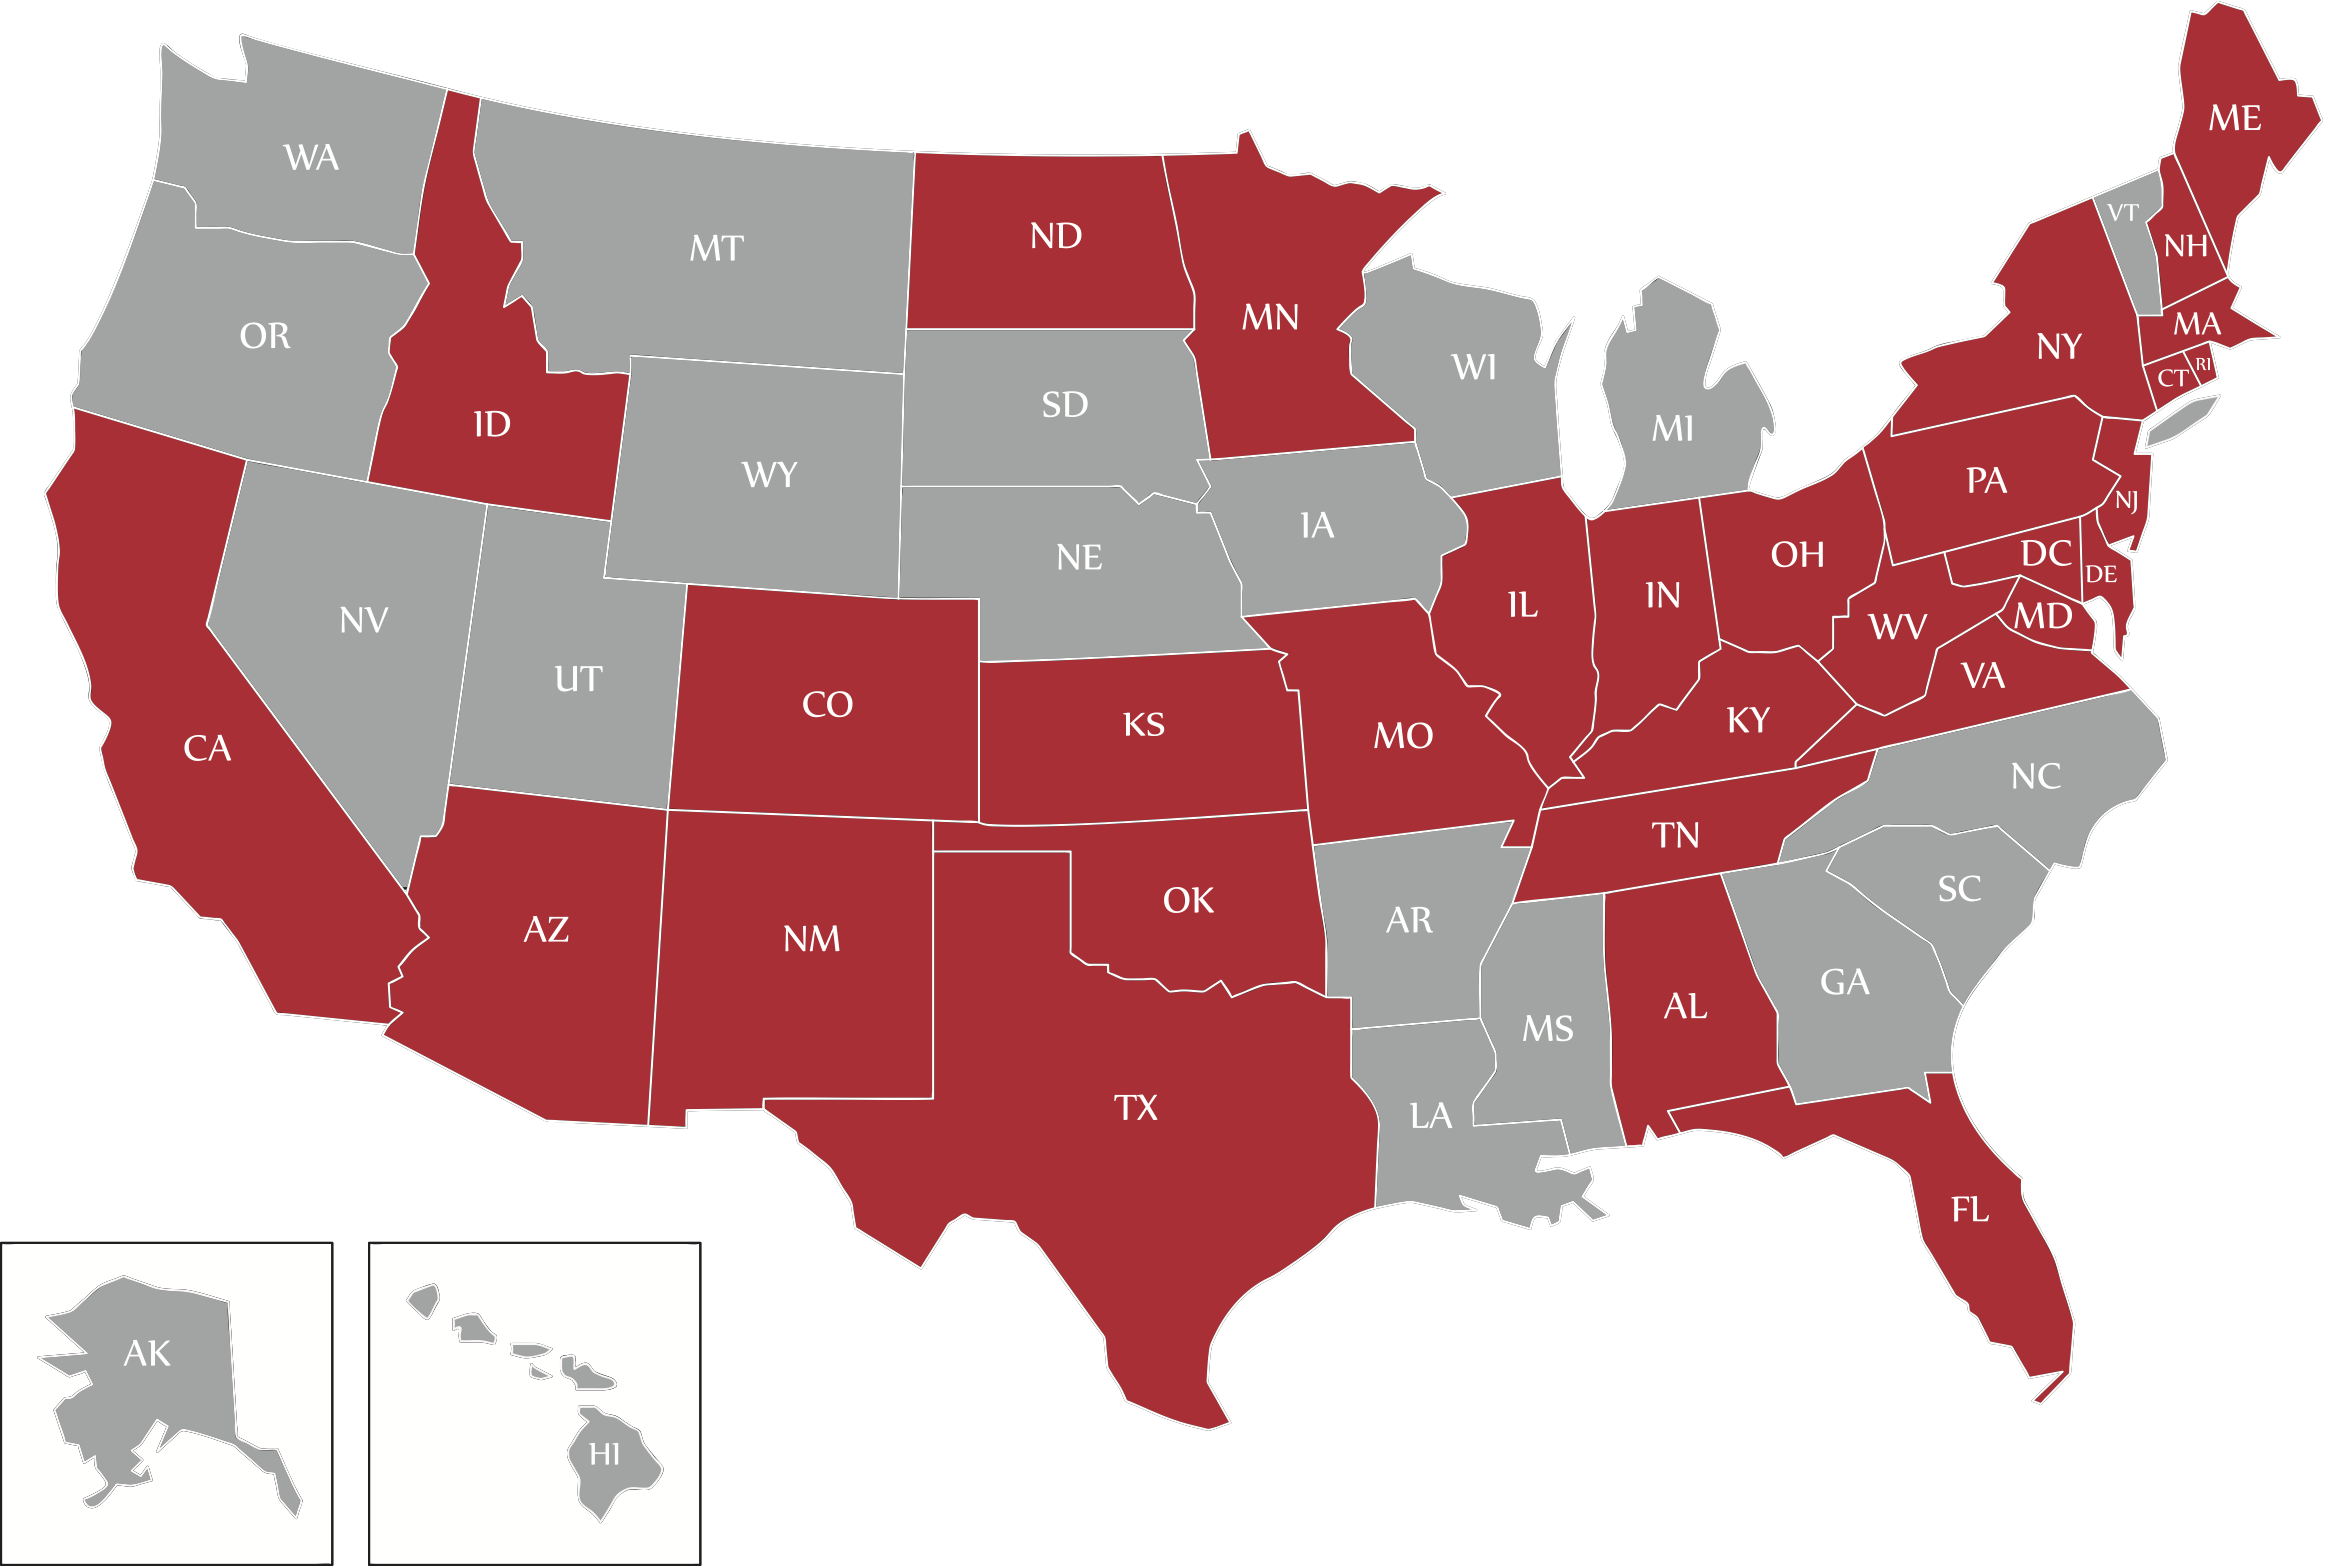 Target has a demand response presence in 31 states